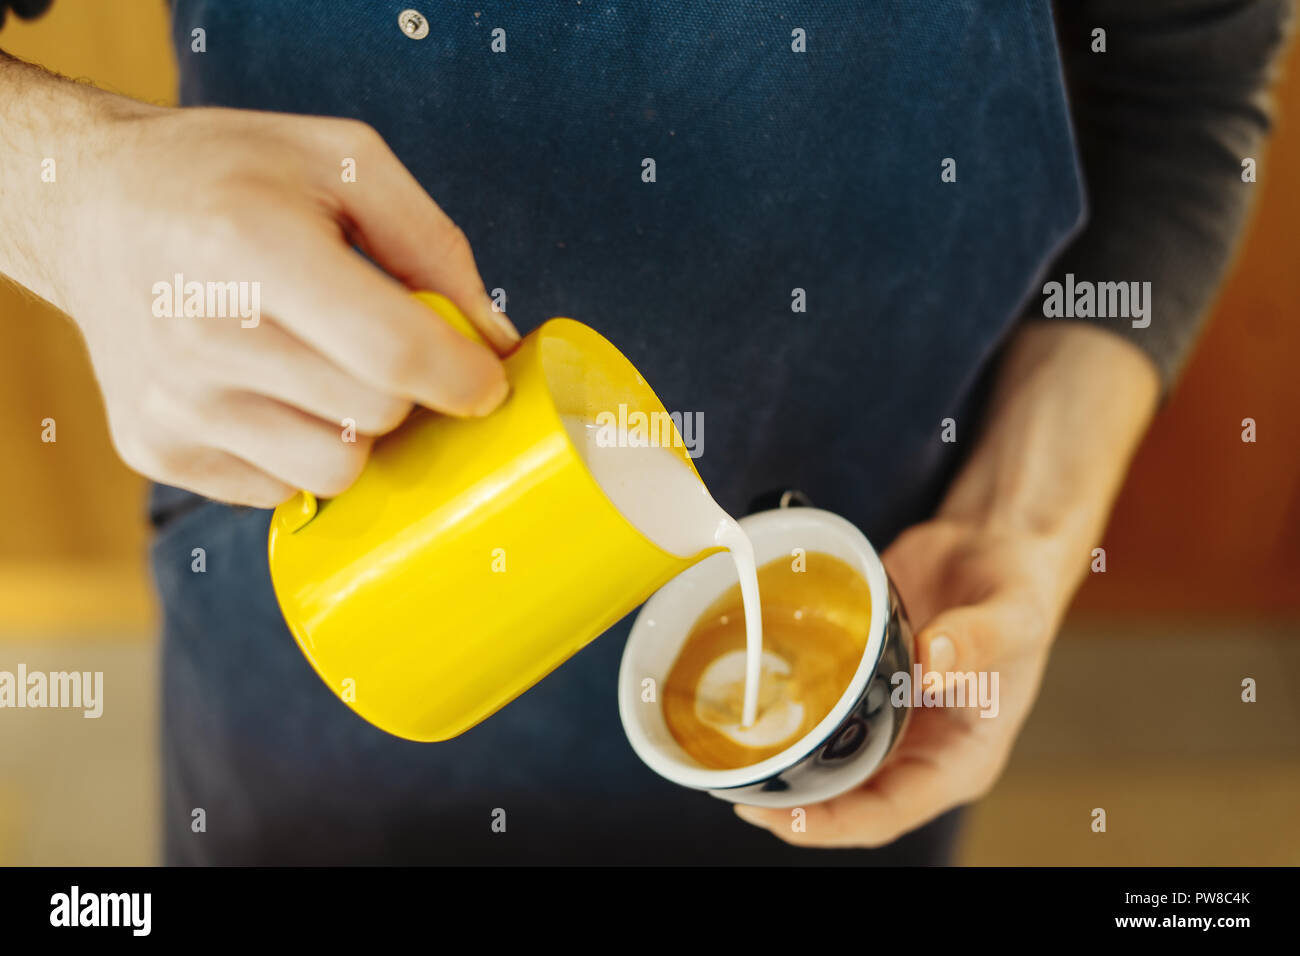 Close up of barista pouring steamed milk into coffee cup making latte art. - Stock Image